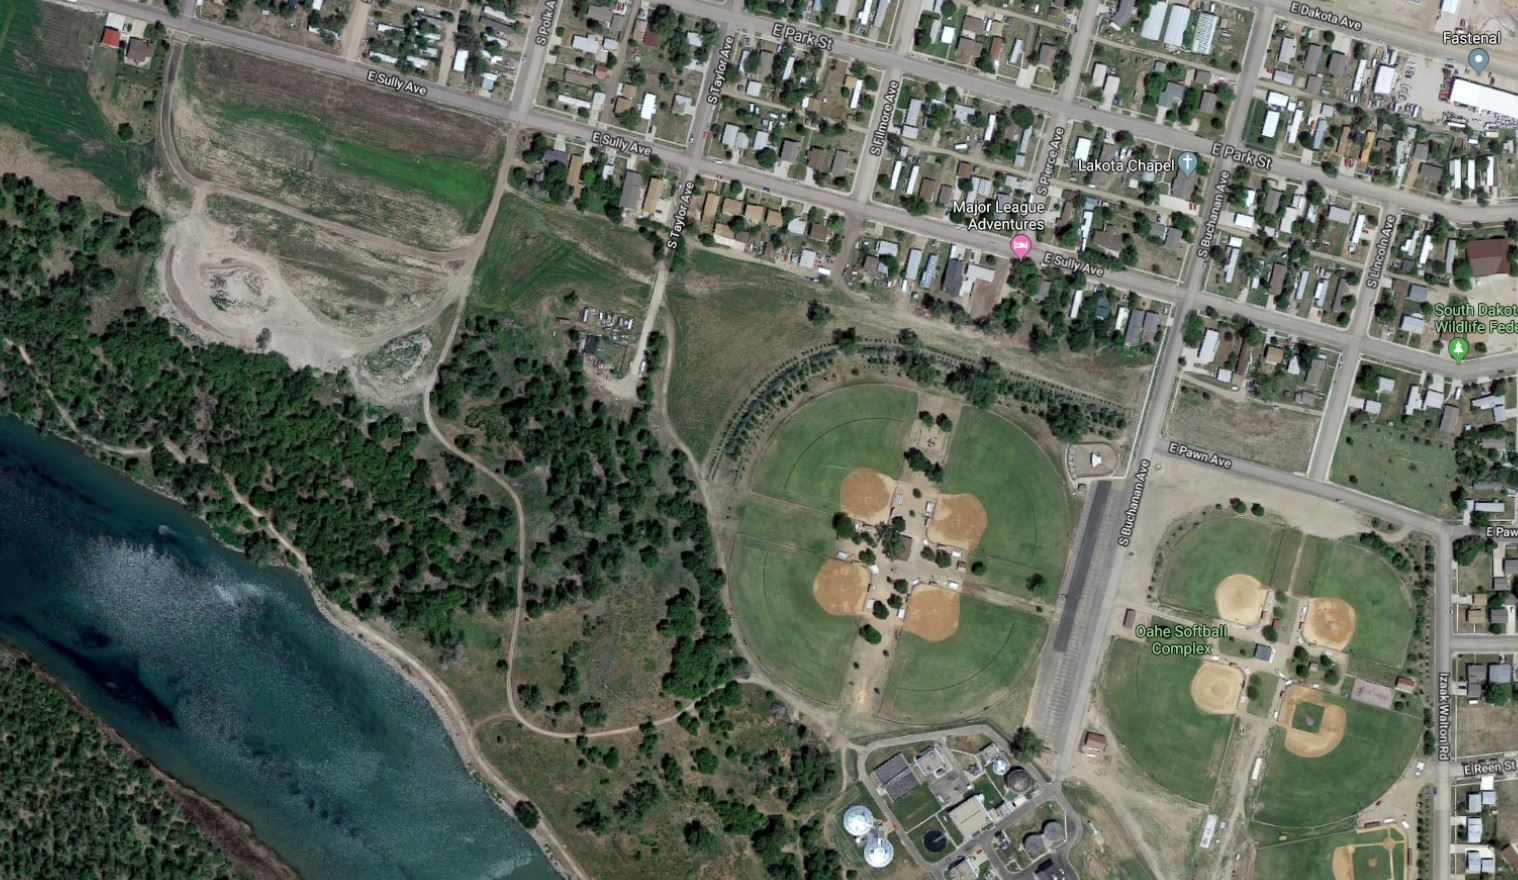 OAHE SOFTBALL COMPLEX MAP